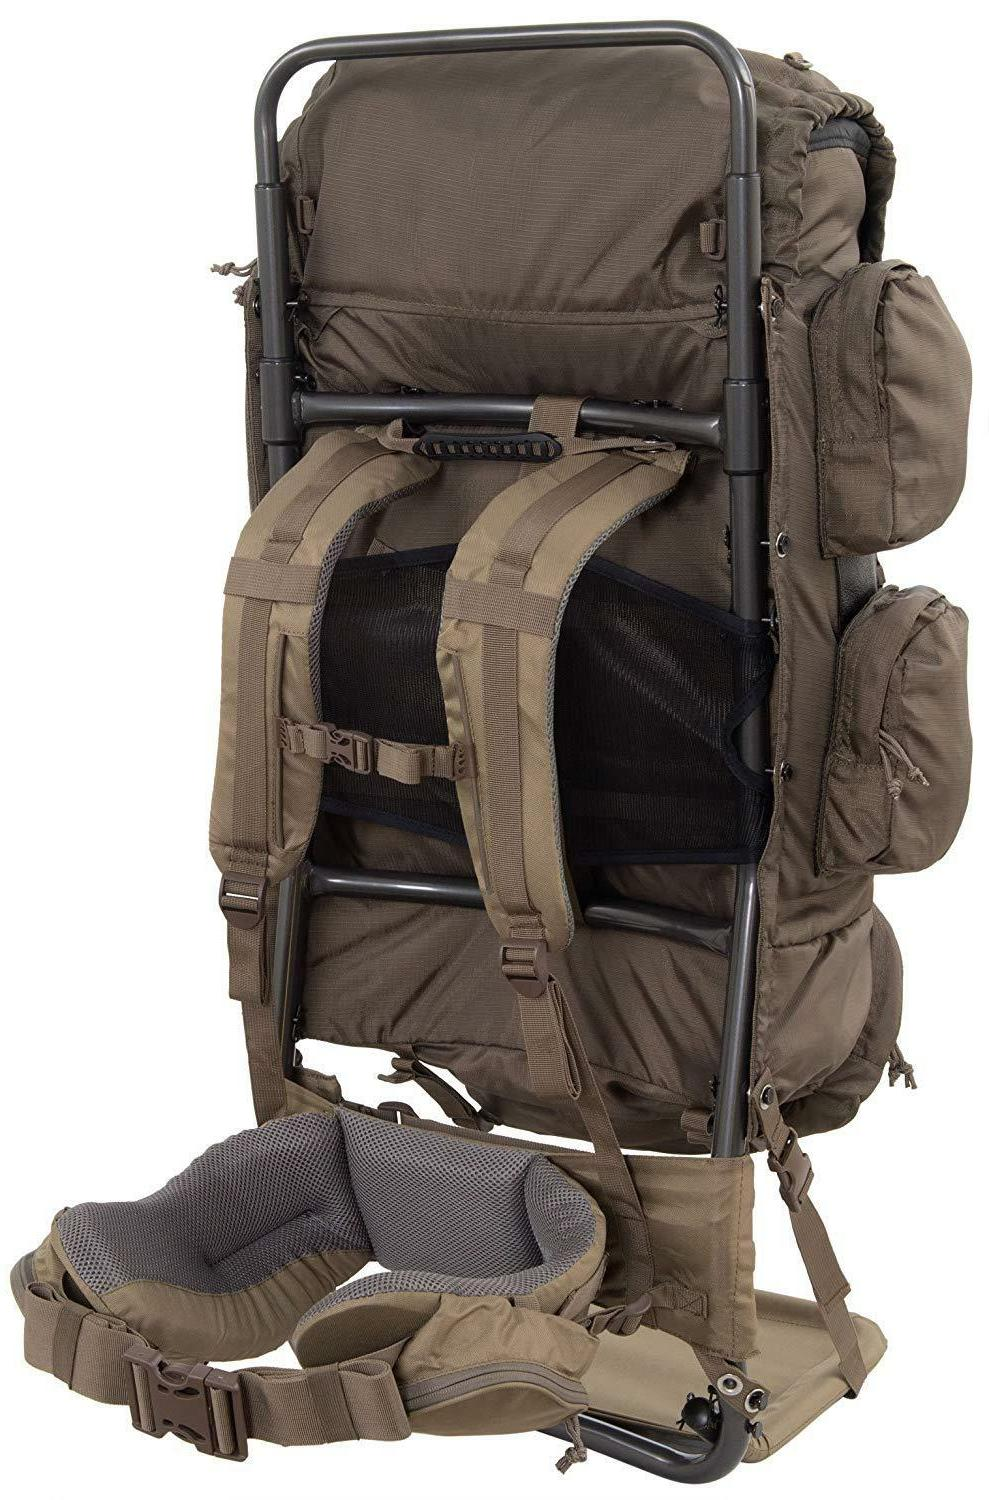 Hunting Back Frame Gear Bag Holder